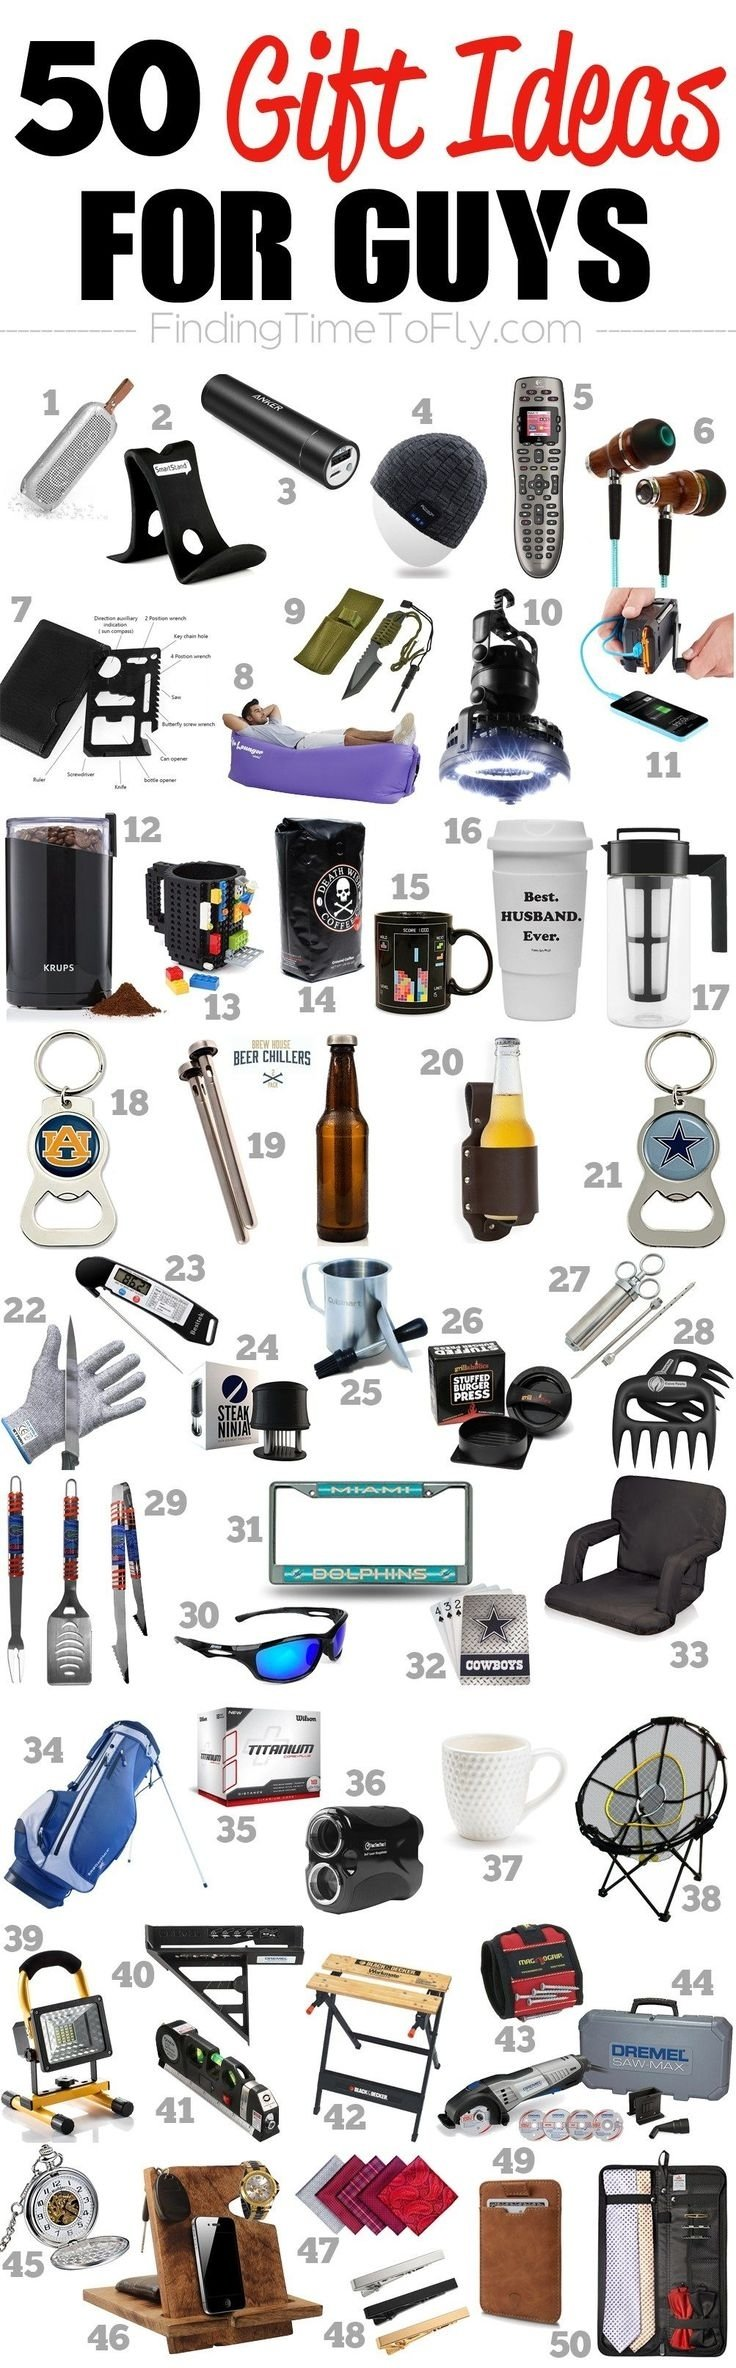 10 Lovely Gift Ideas For 21 Year Old Male 178 Best Gifts Him Images On